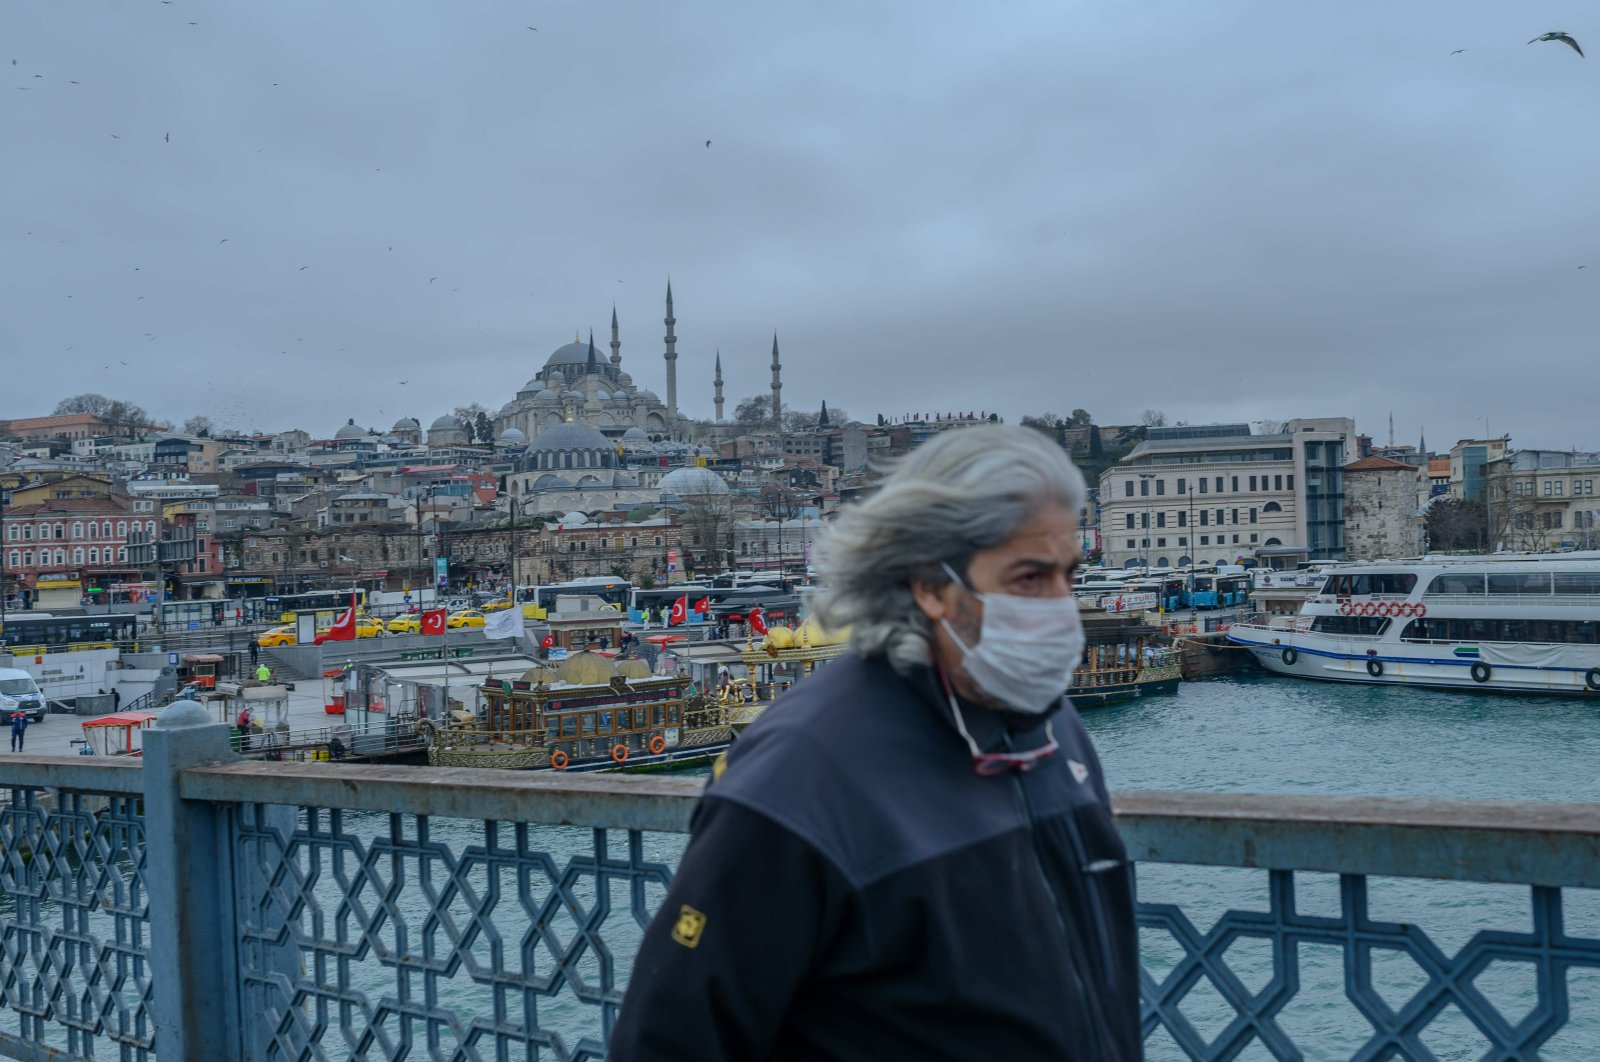 A man walks across Galata Bridge in central Istanbul, deserted due to the novel coronavirus outbreak, Thursday, March 26, 2020. (AFP Photo)